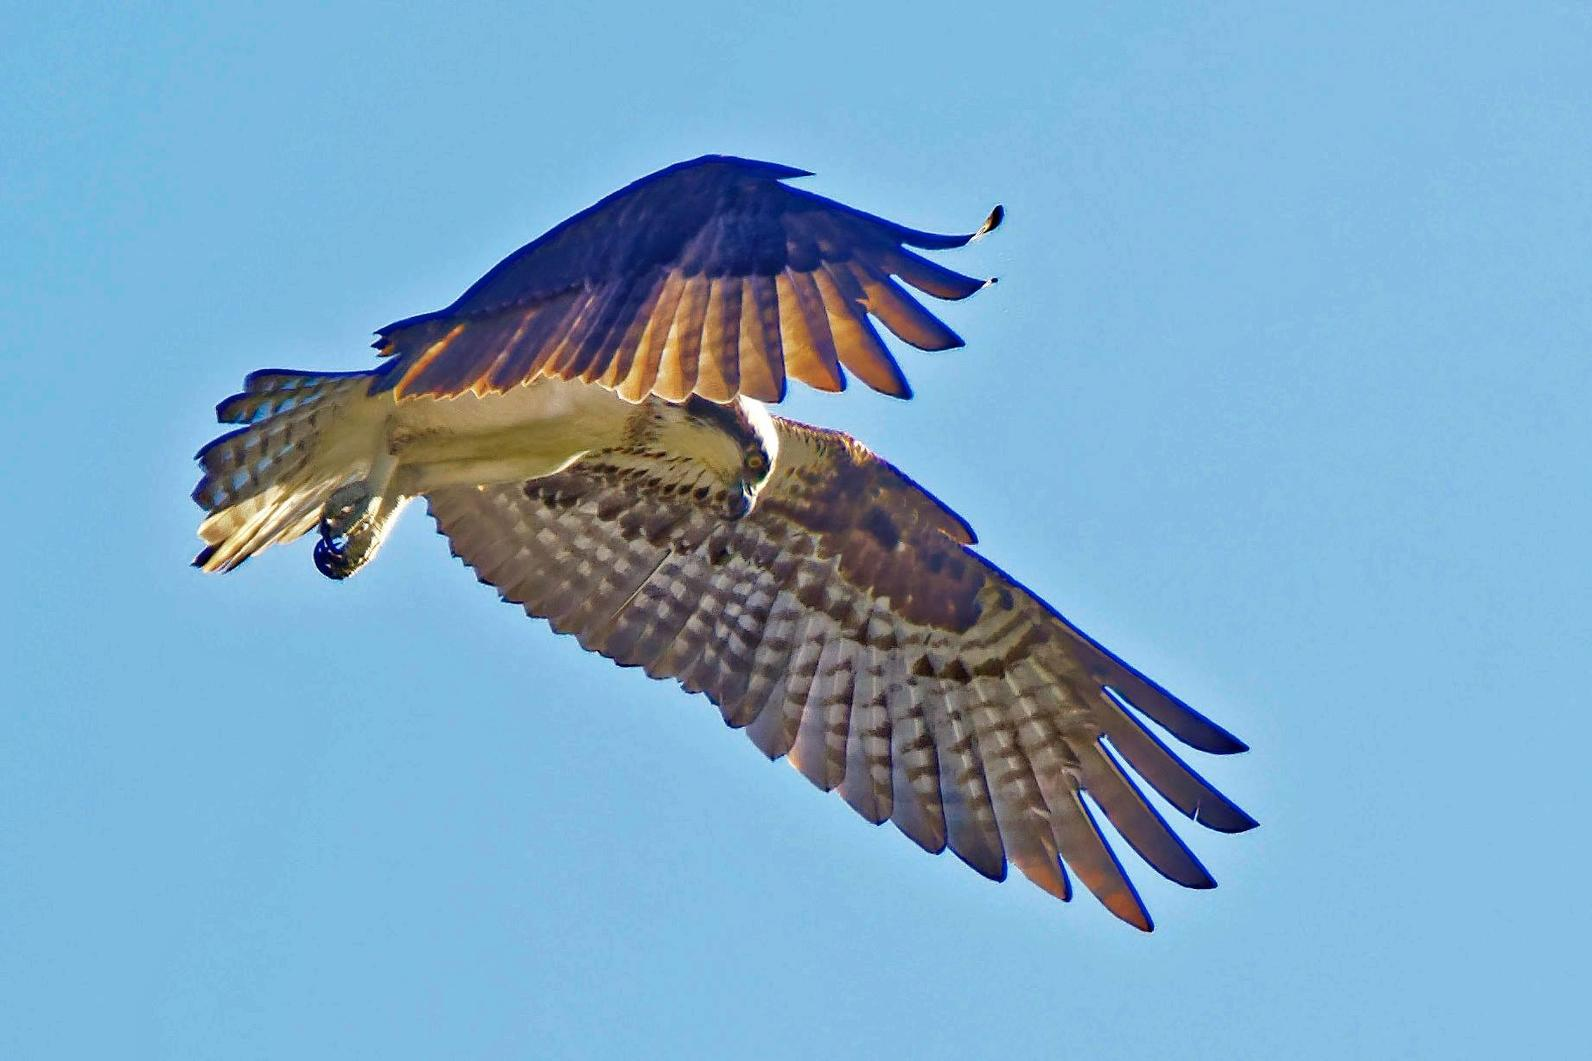 Most Ospreys that breed in North America migrate to Central and South America for the winter.